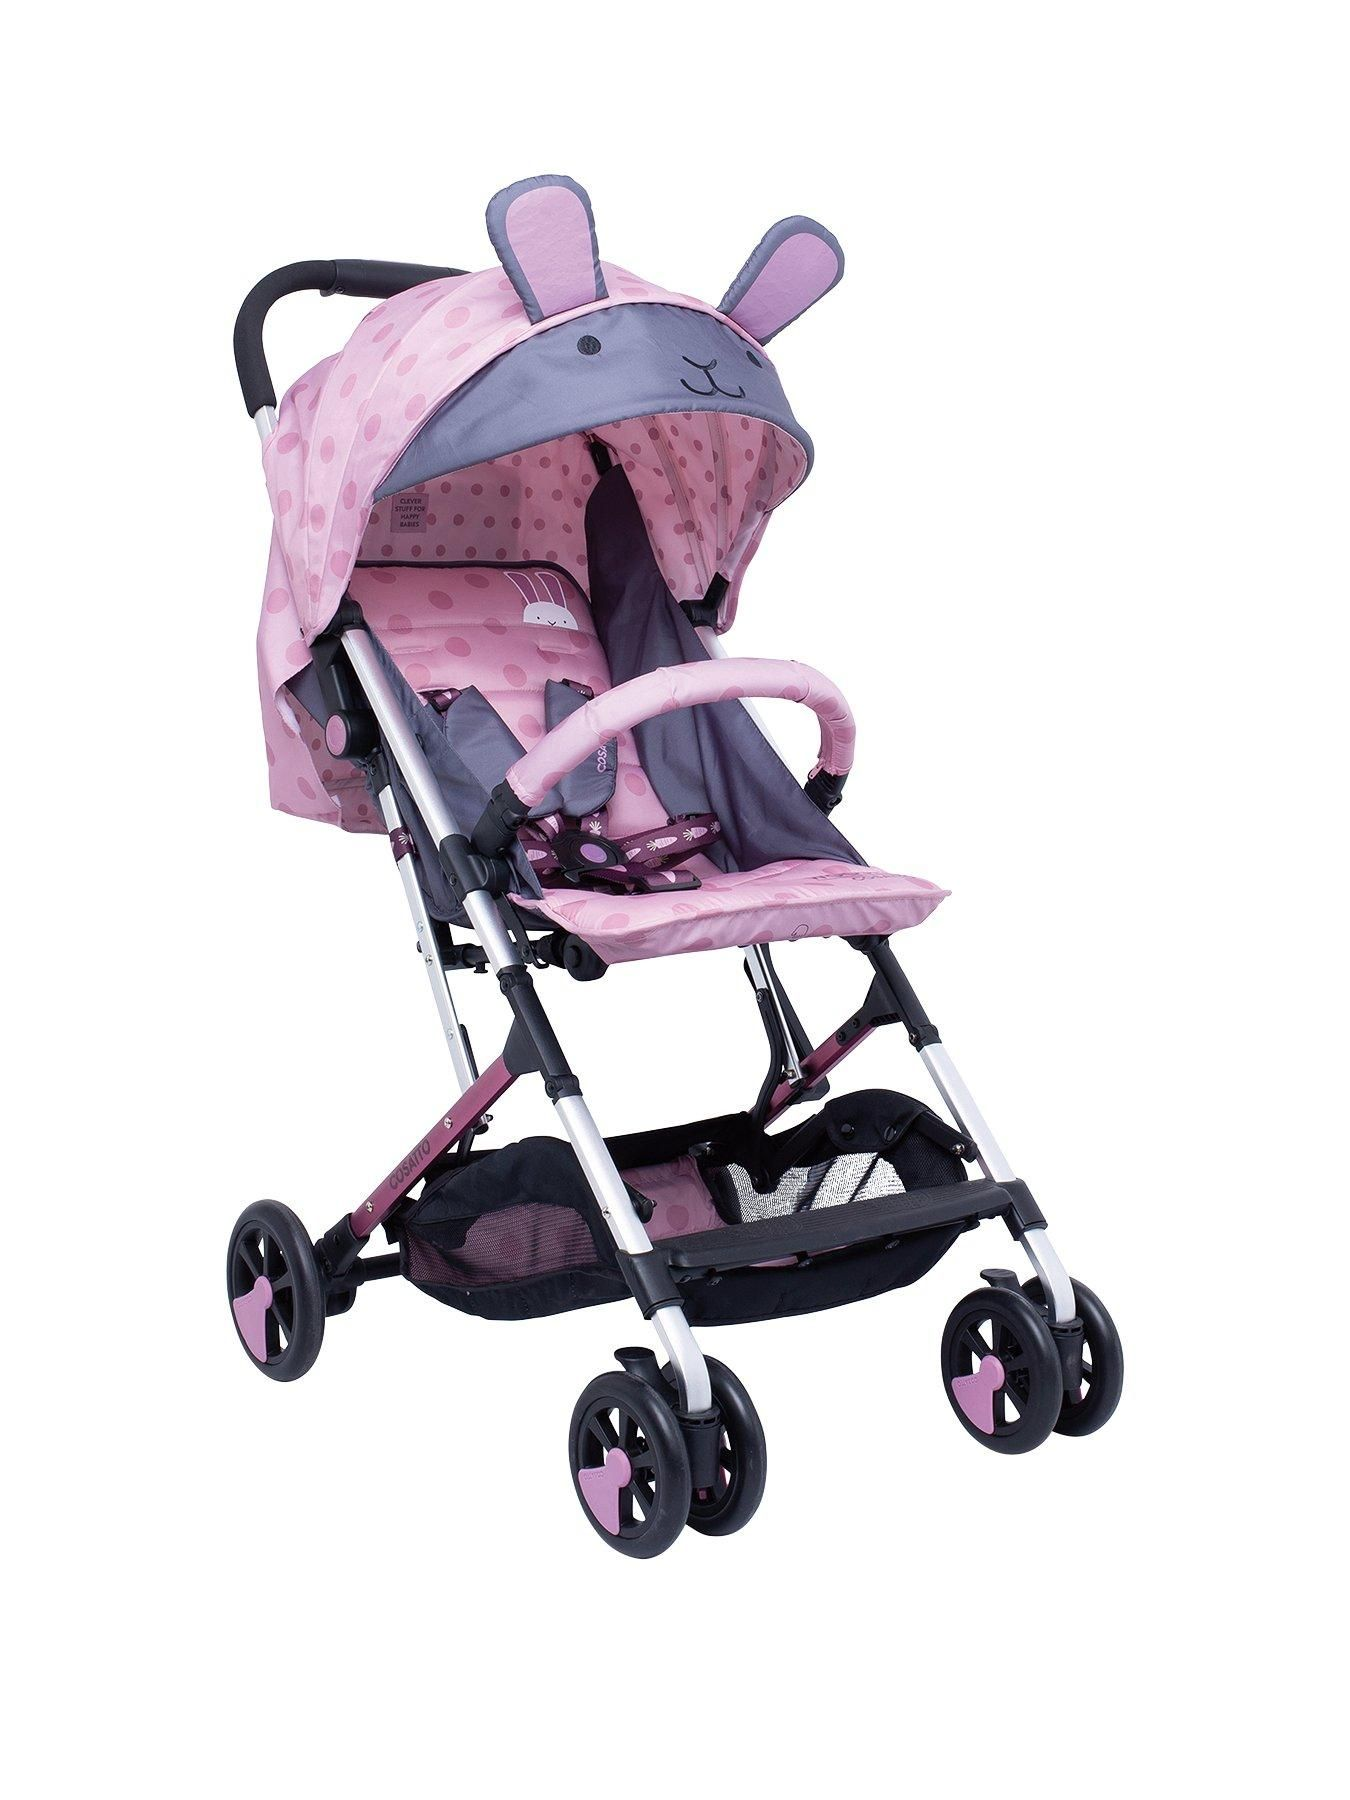 Cosatto Woosh 2 Stroller Bunny Buddy in 2020 Cosatto